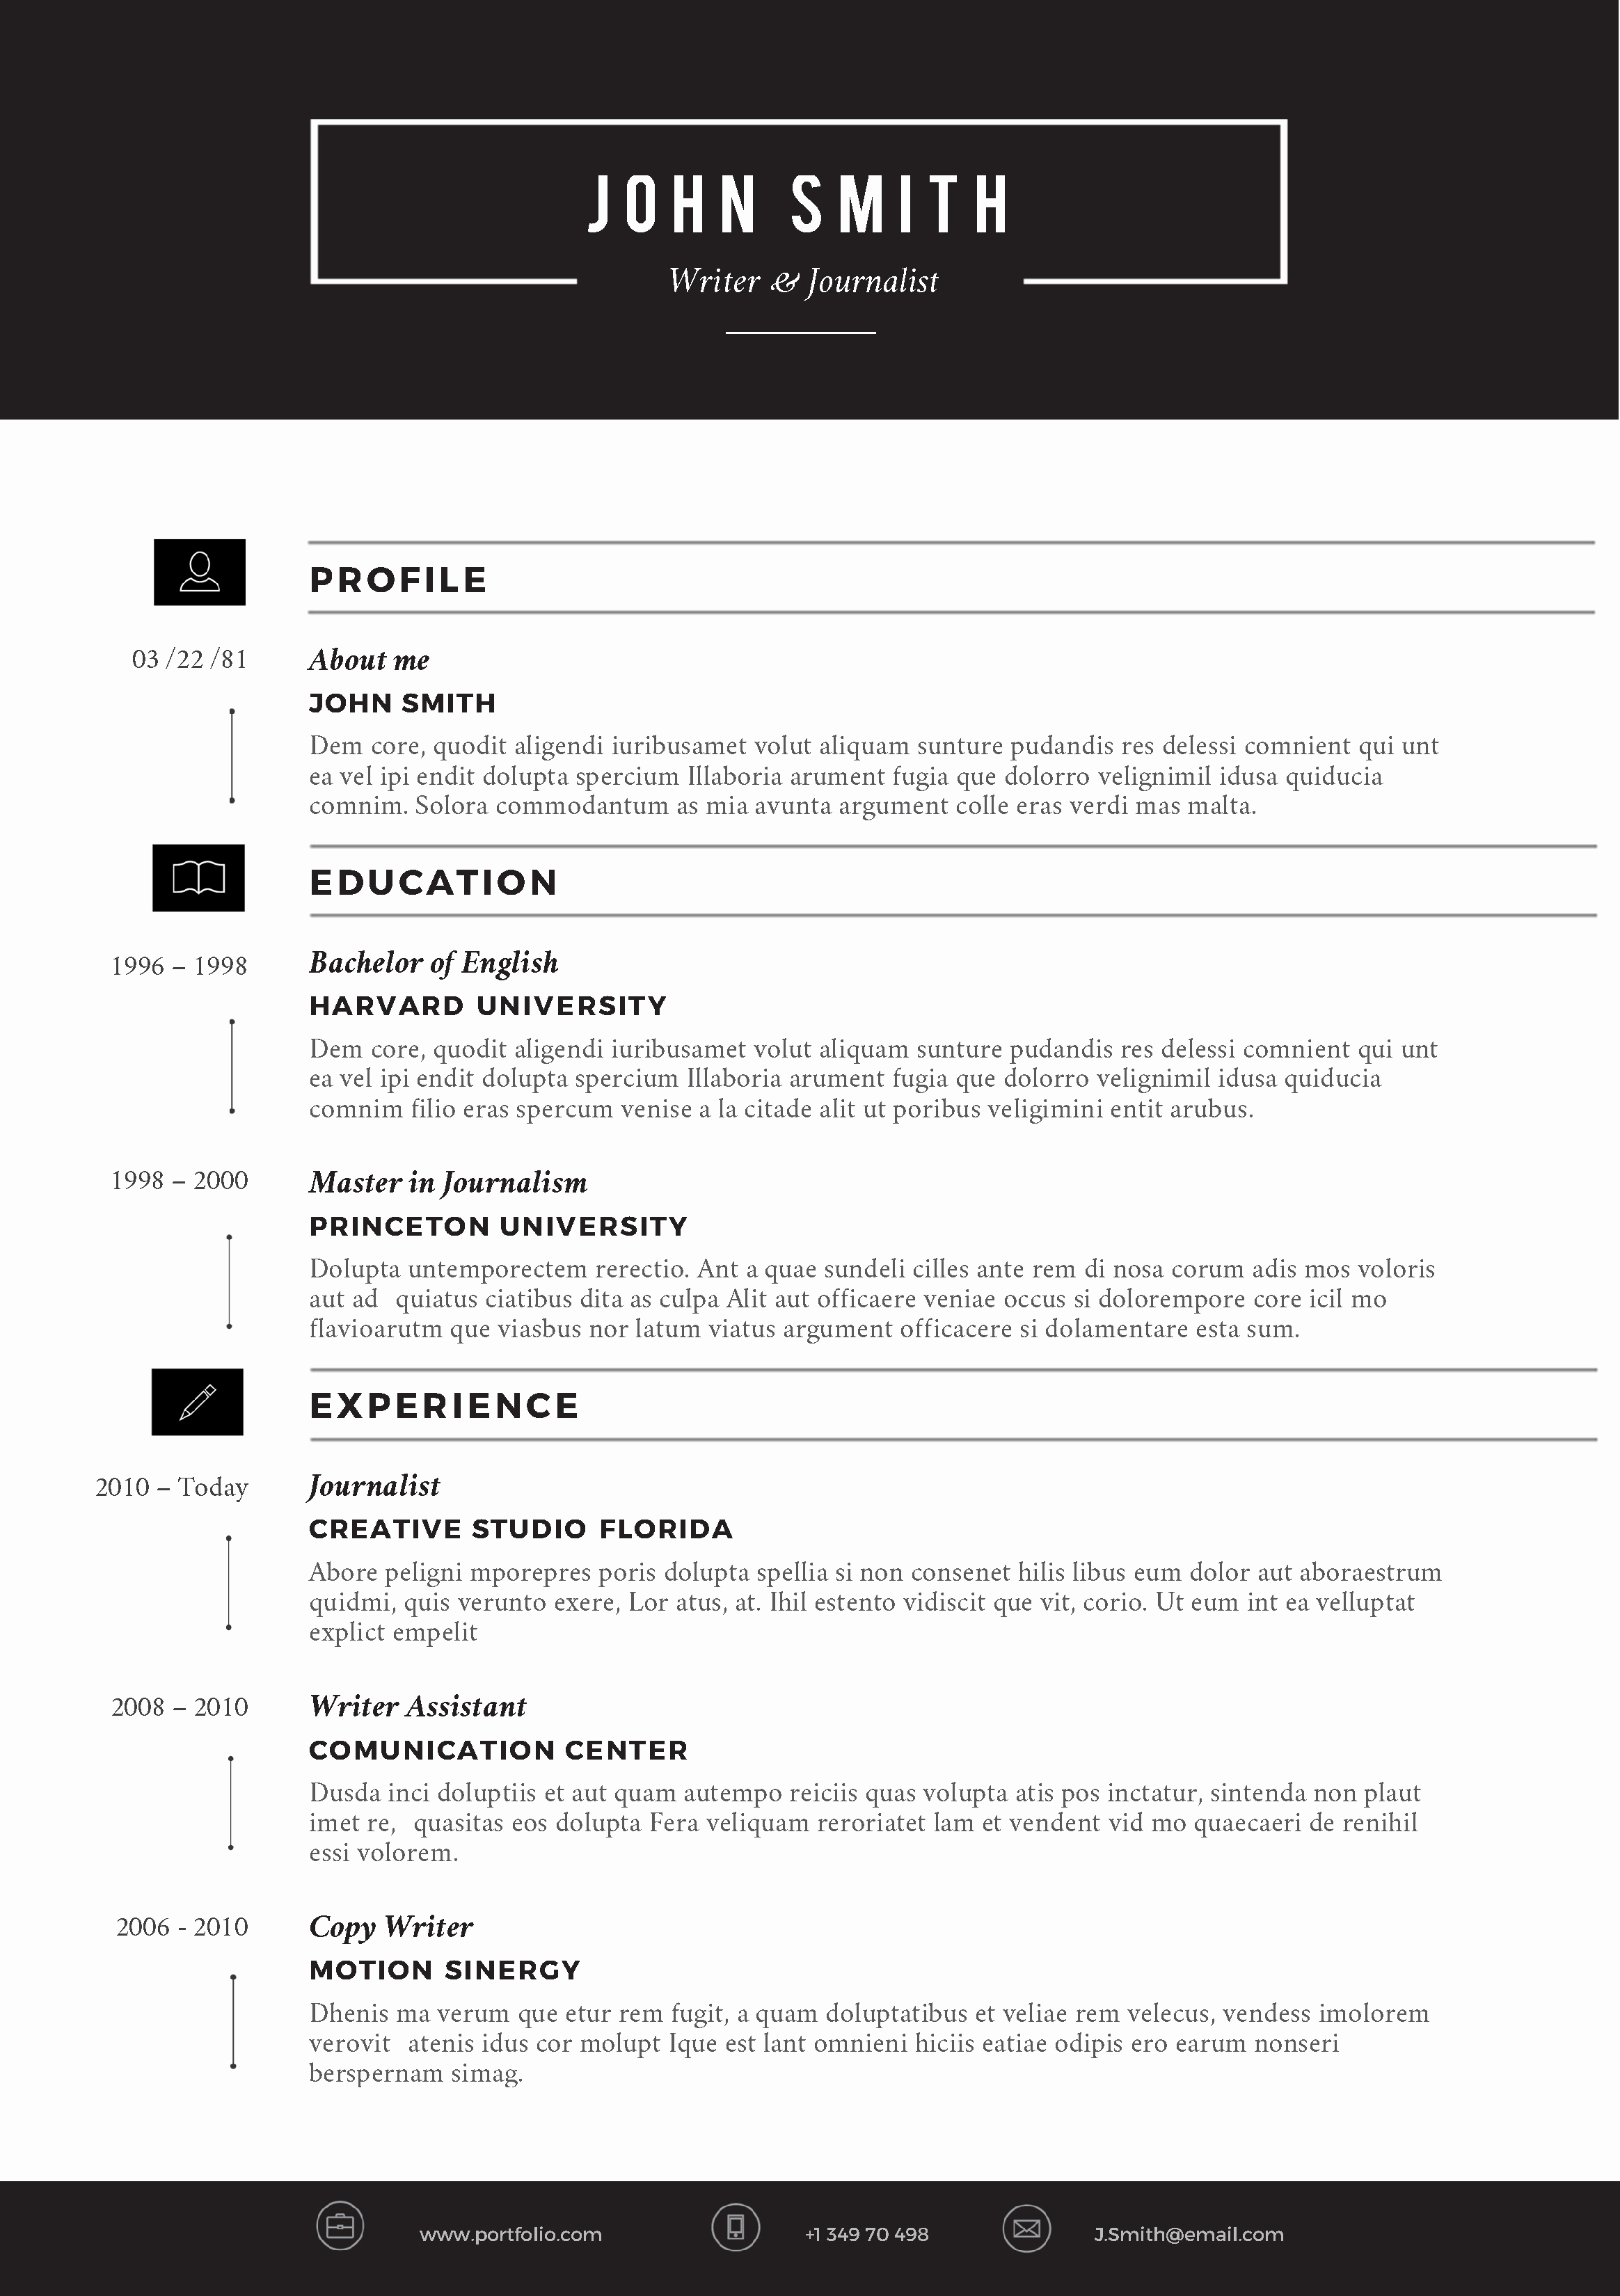 Resume Template with Photo Awesome Creative Resume Template by Cvfolio Resumes